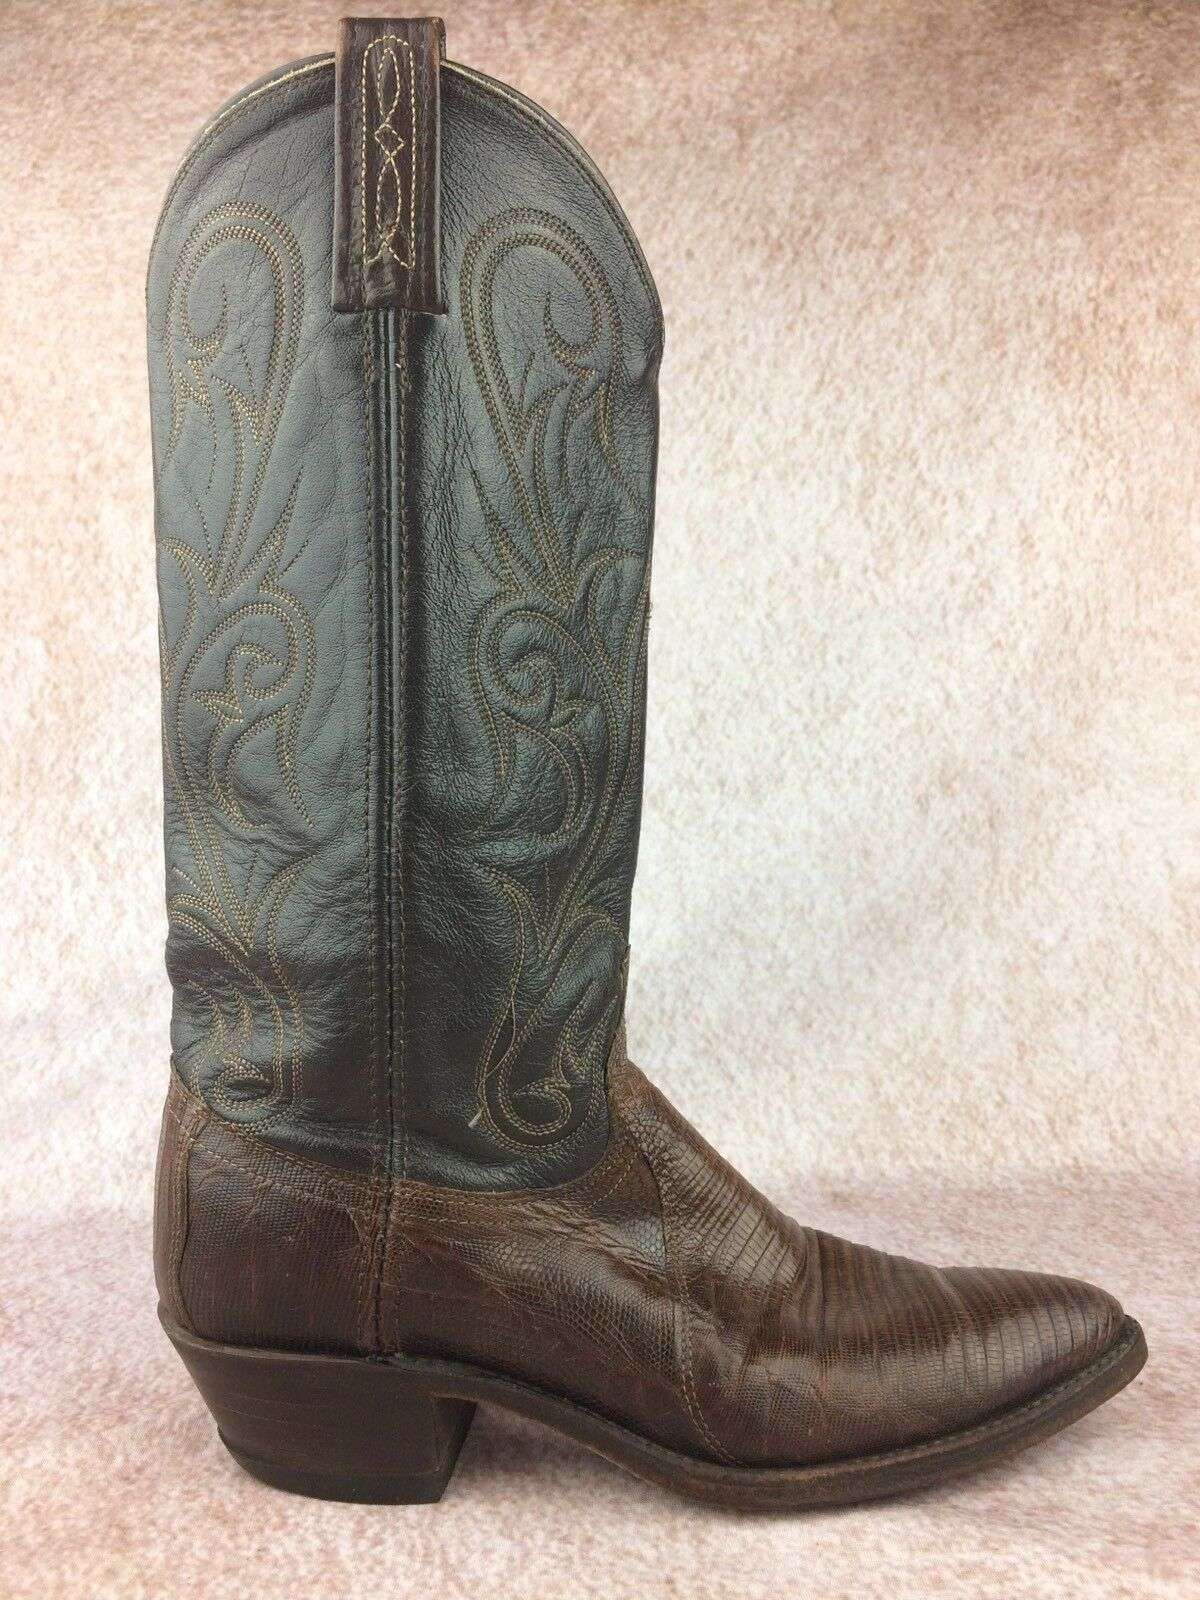 DAN POST Women's Brown Teju Lizard Leather Western Cowboy Boots - Size 7.5 M